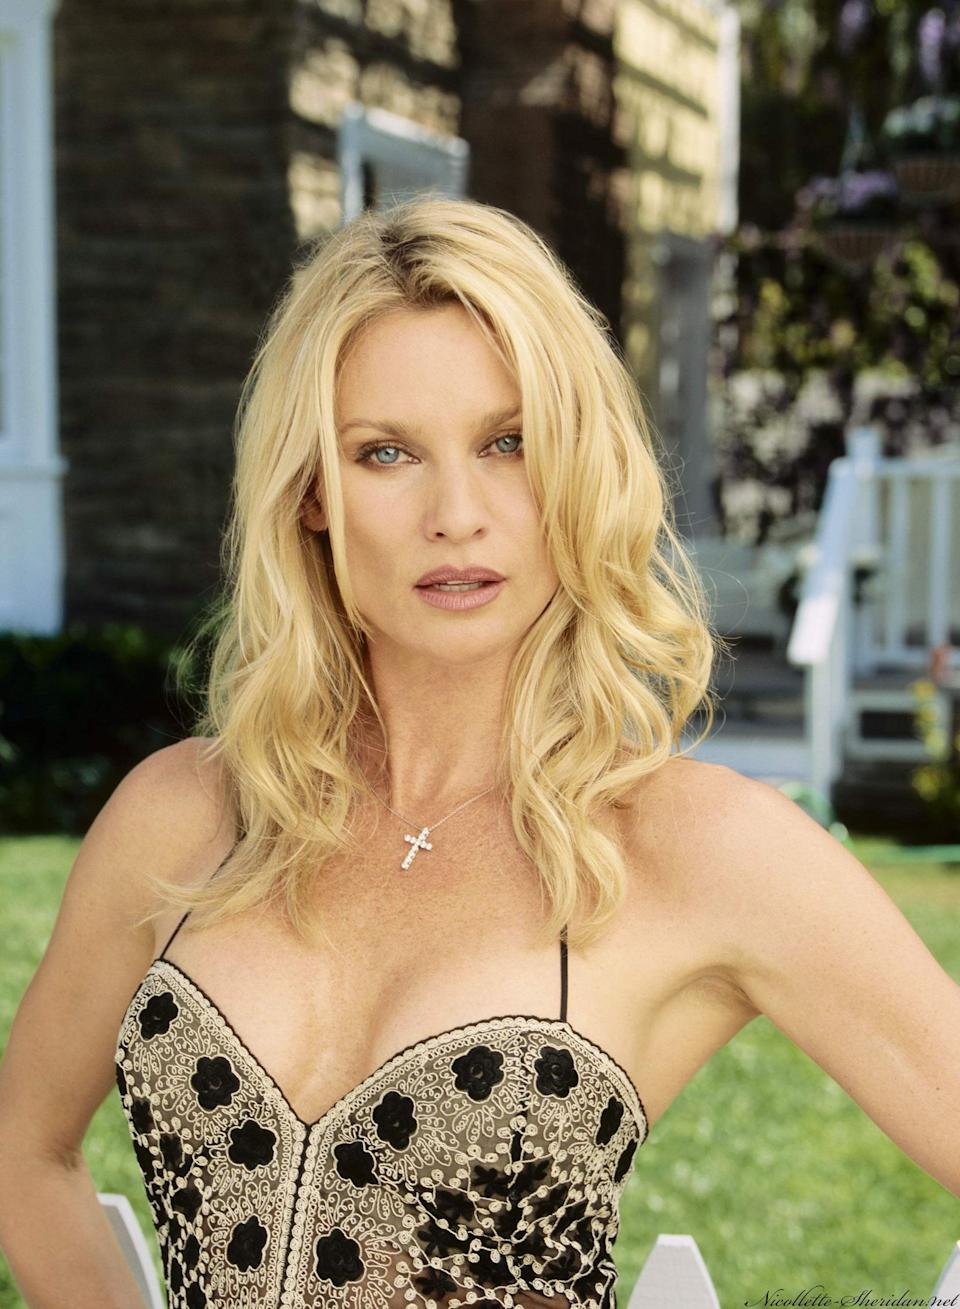 Nicolette was nominated for a Golden Globe for her portrayal of Edie Britt, which she did for five series. The character wasn't one of the main 'Housewives', but did have a special place in fans' hearts.